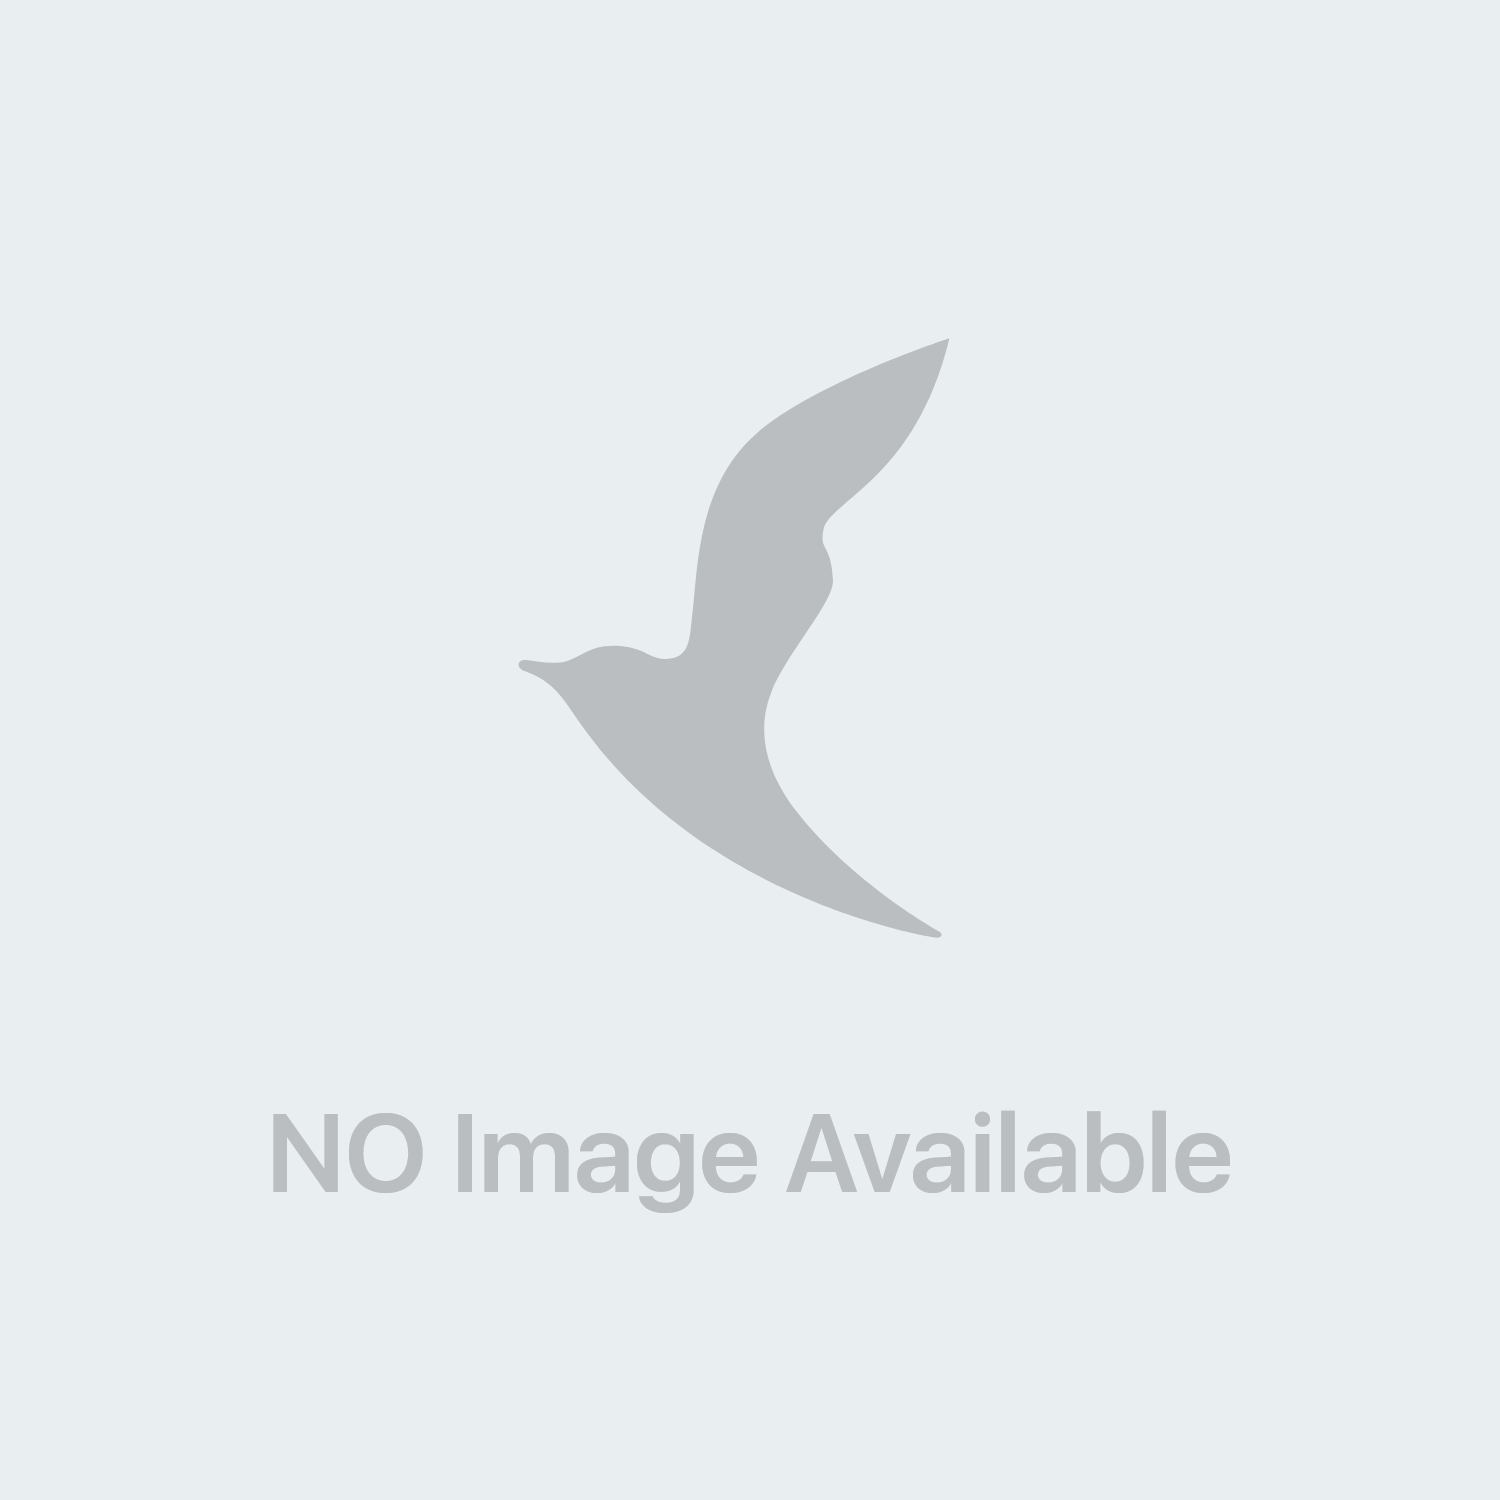 Acetamol 500 mg Bambini Paracetamolo 10 Supposte